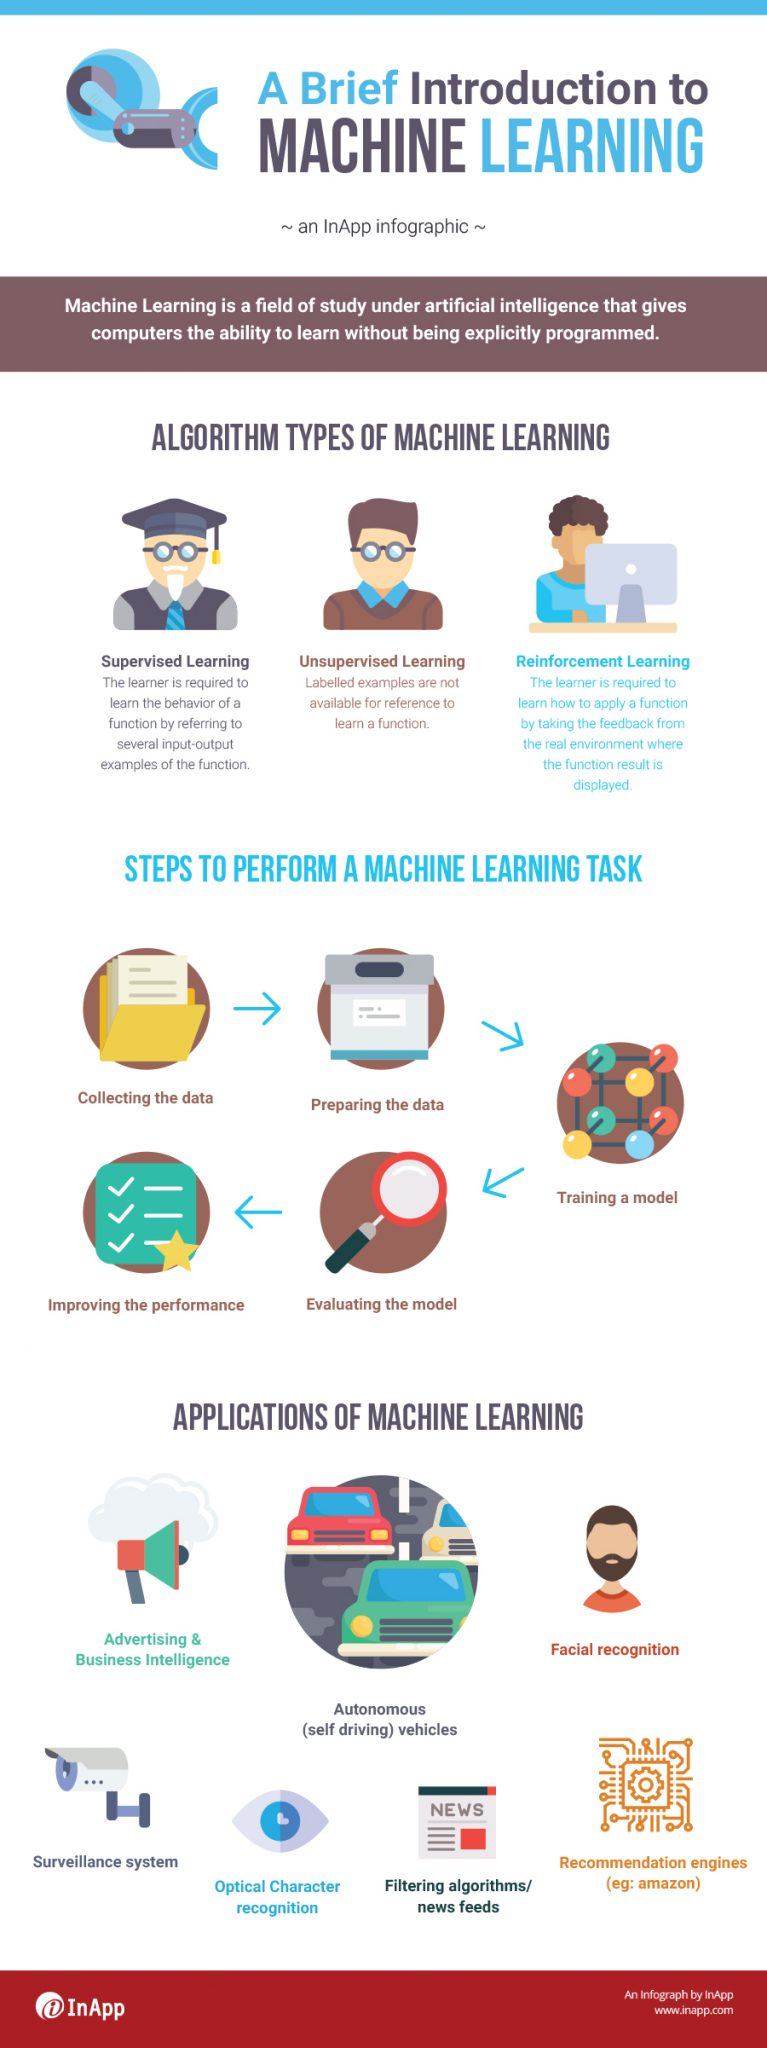 Introduction to Machine Learning,Introduction to ML,Machine Learning Infographic,ML Infographic,Applications of Machine Learning,Introduction to ML and AI,Machine Learning Algorithms Infographic,AI and Machine Learning Infographic